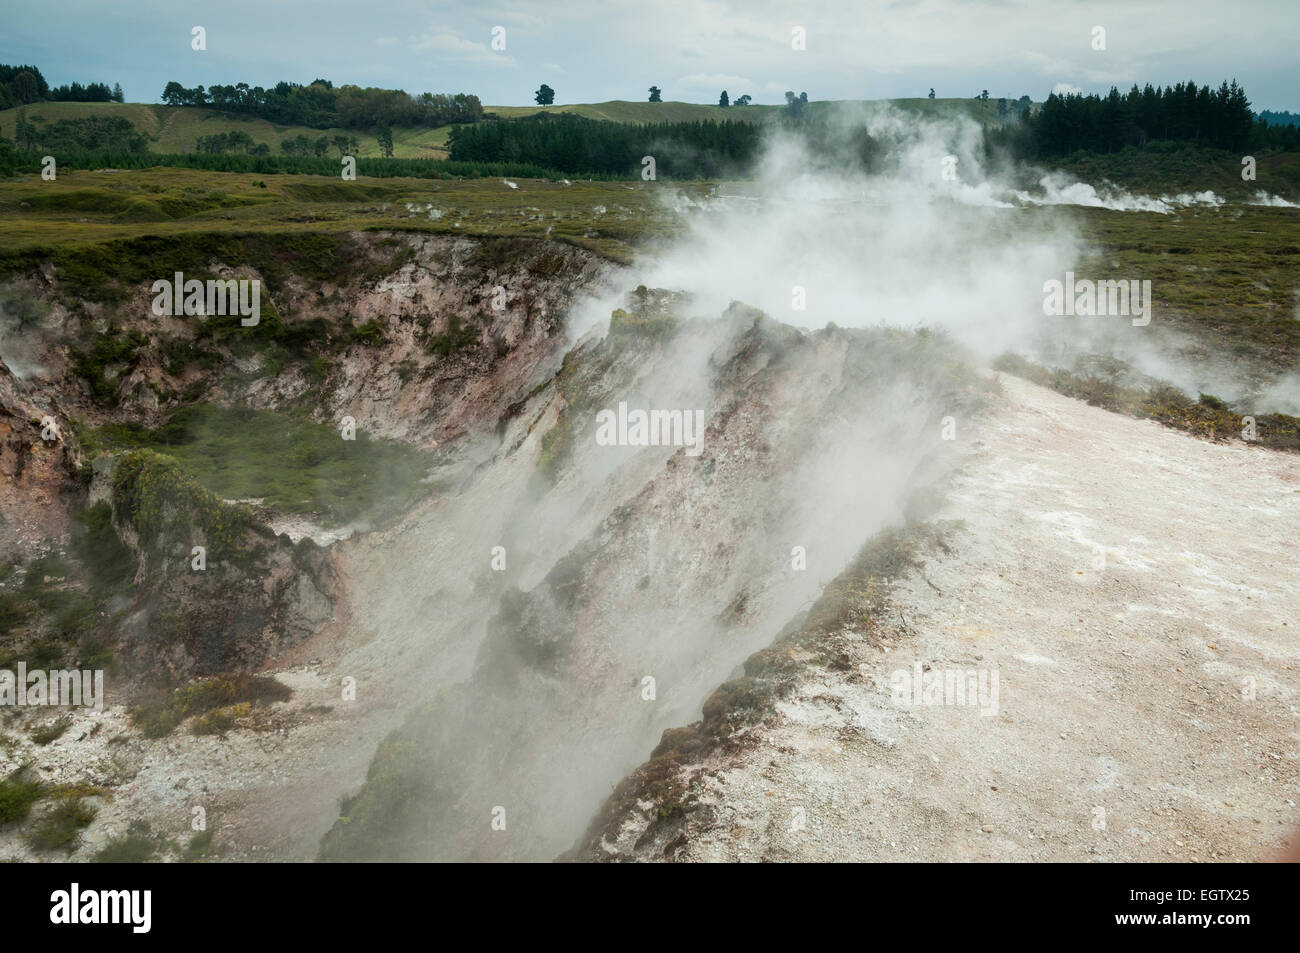 Craters of the Moon geothermal area, Taupo, Waikato, North Island, New Zealand. - Stock Image